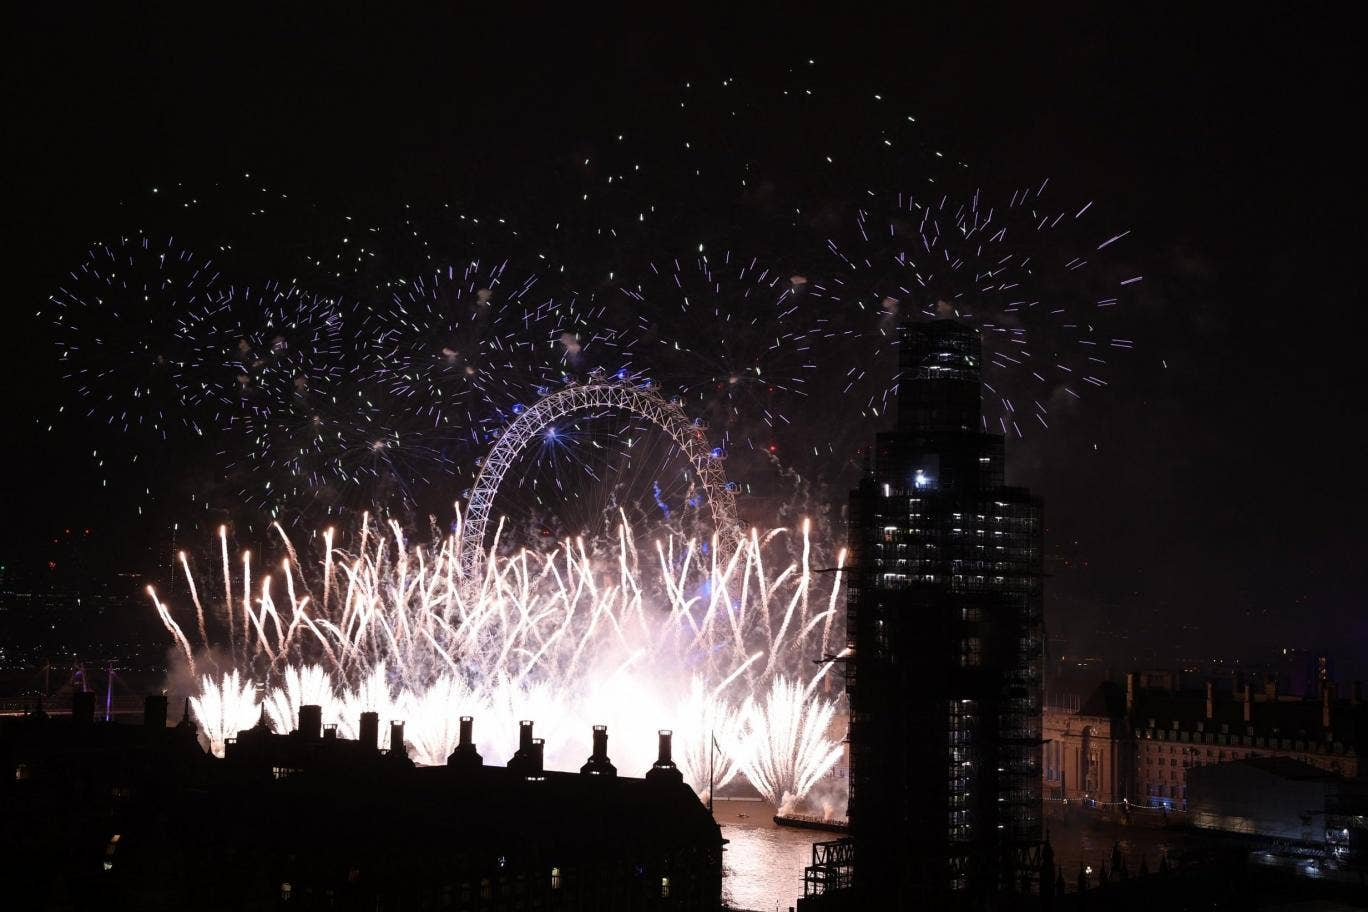 Firework Lands In Front Of House And Explodes On New Year S Eve